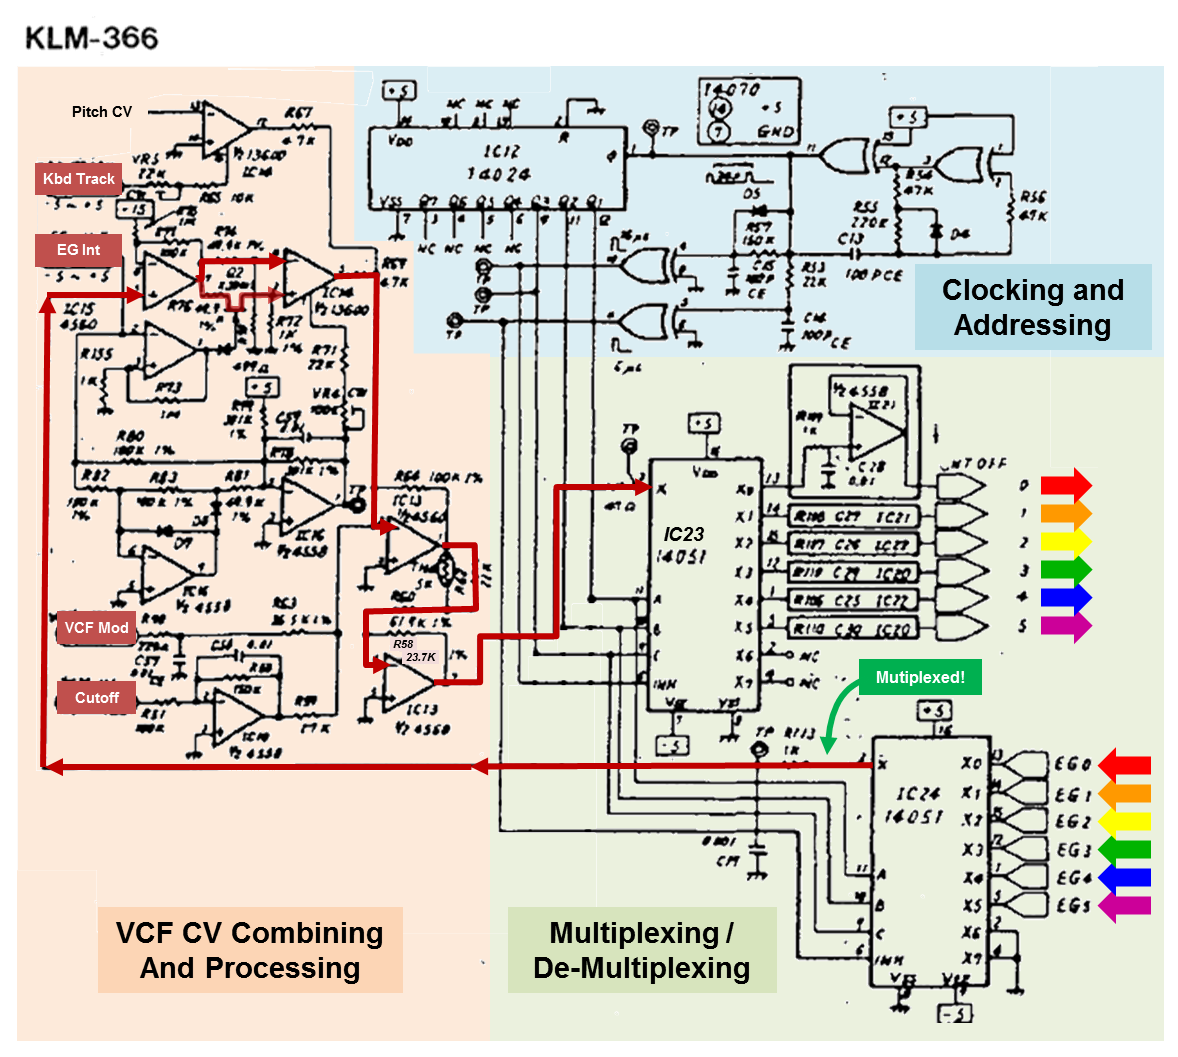 Envelope Schematic Synth Hacker Velocity Sensitivity Understanding The Multiplexing Korg Polysix Vcf Processing Circuit With Annotations